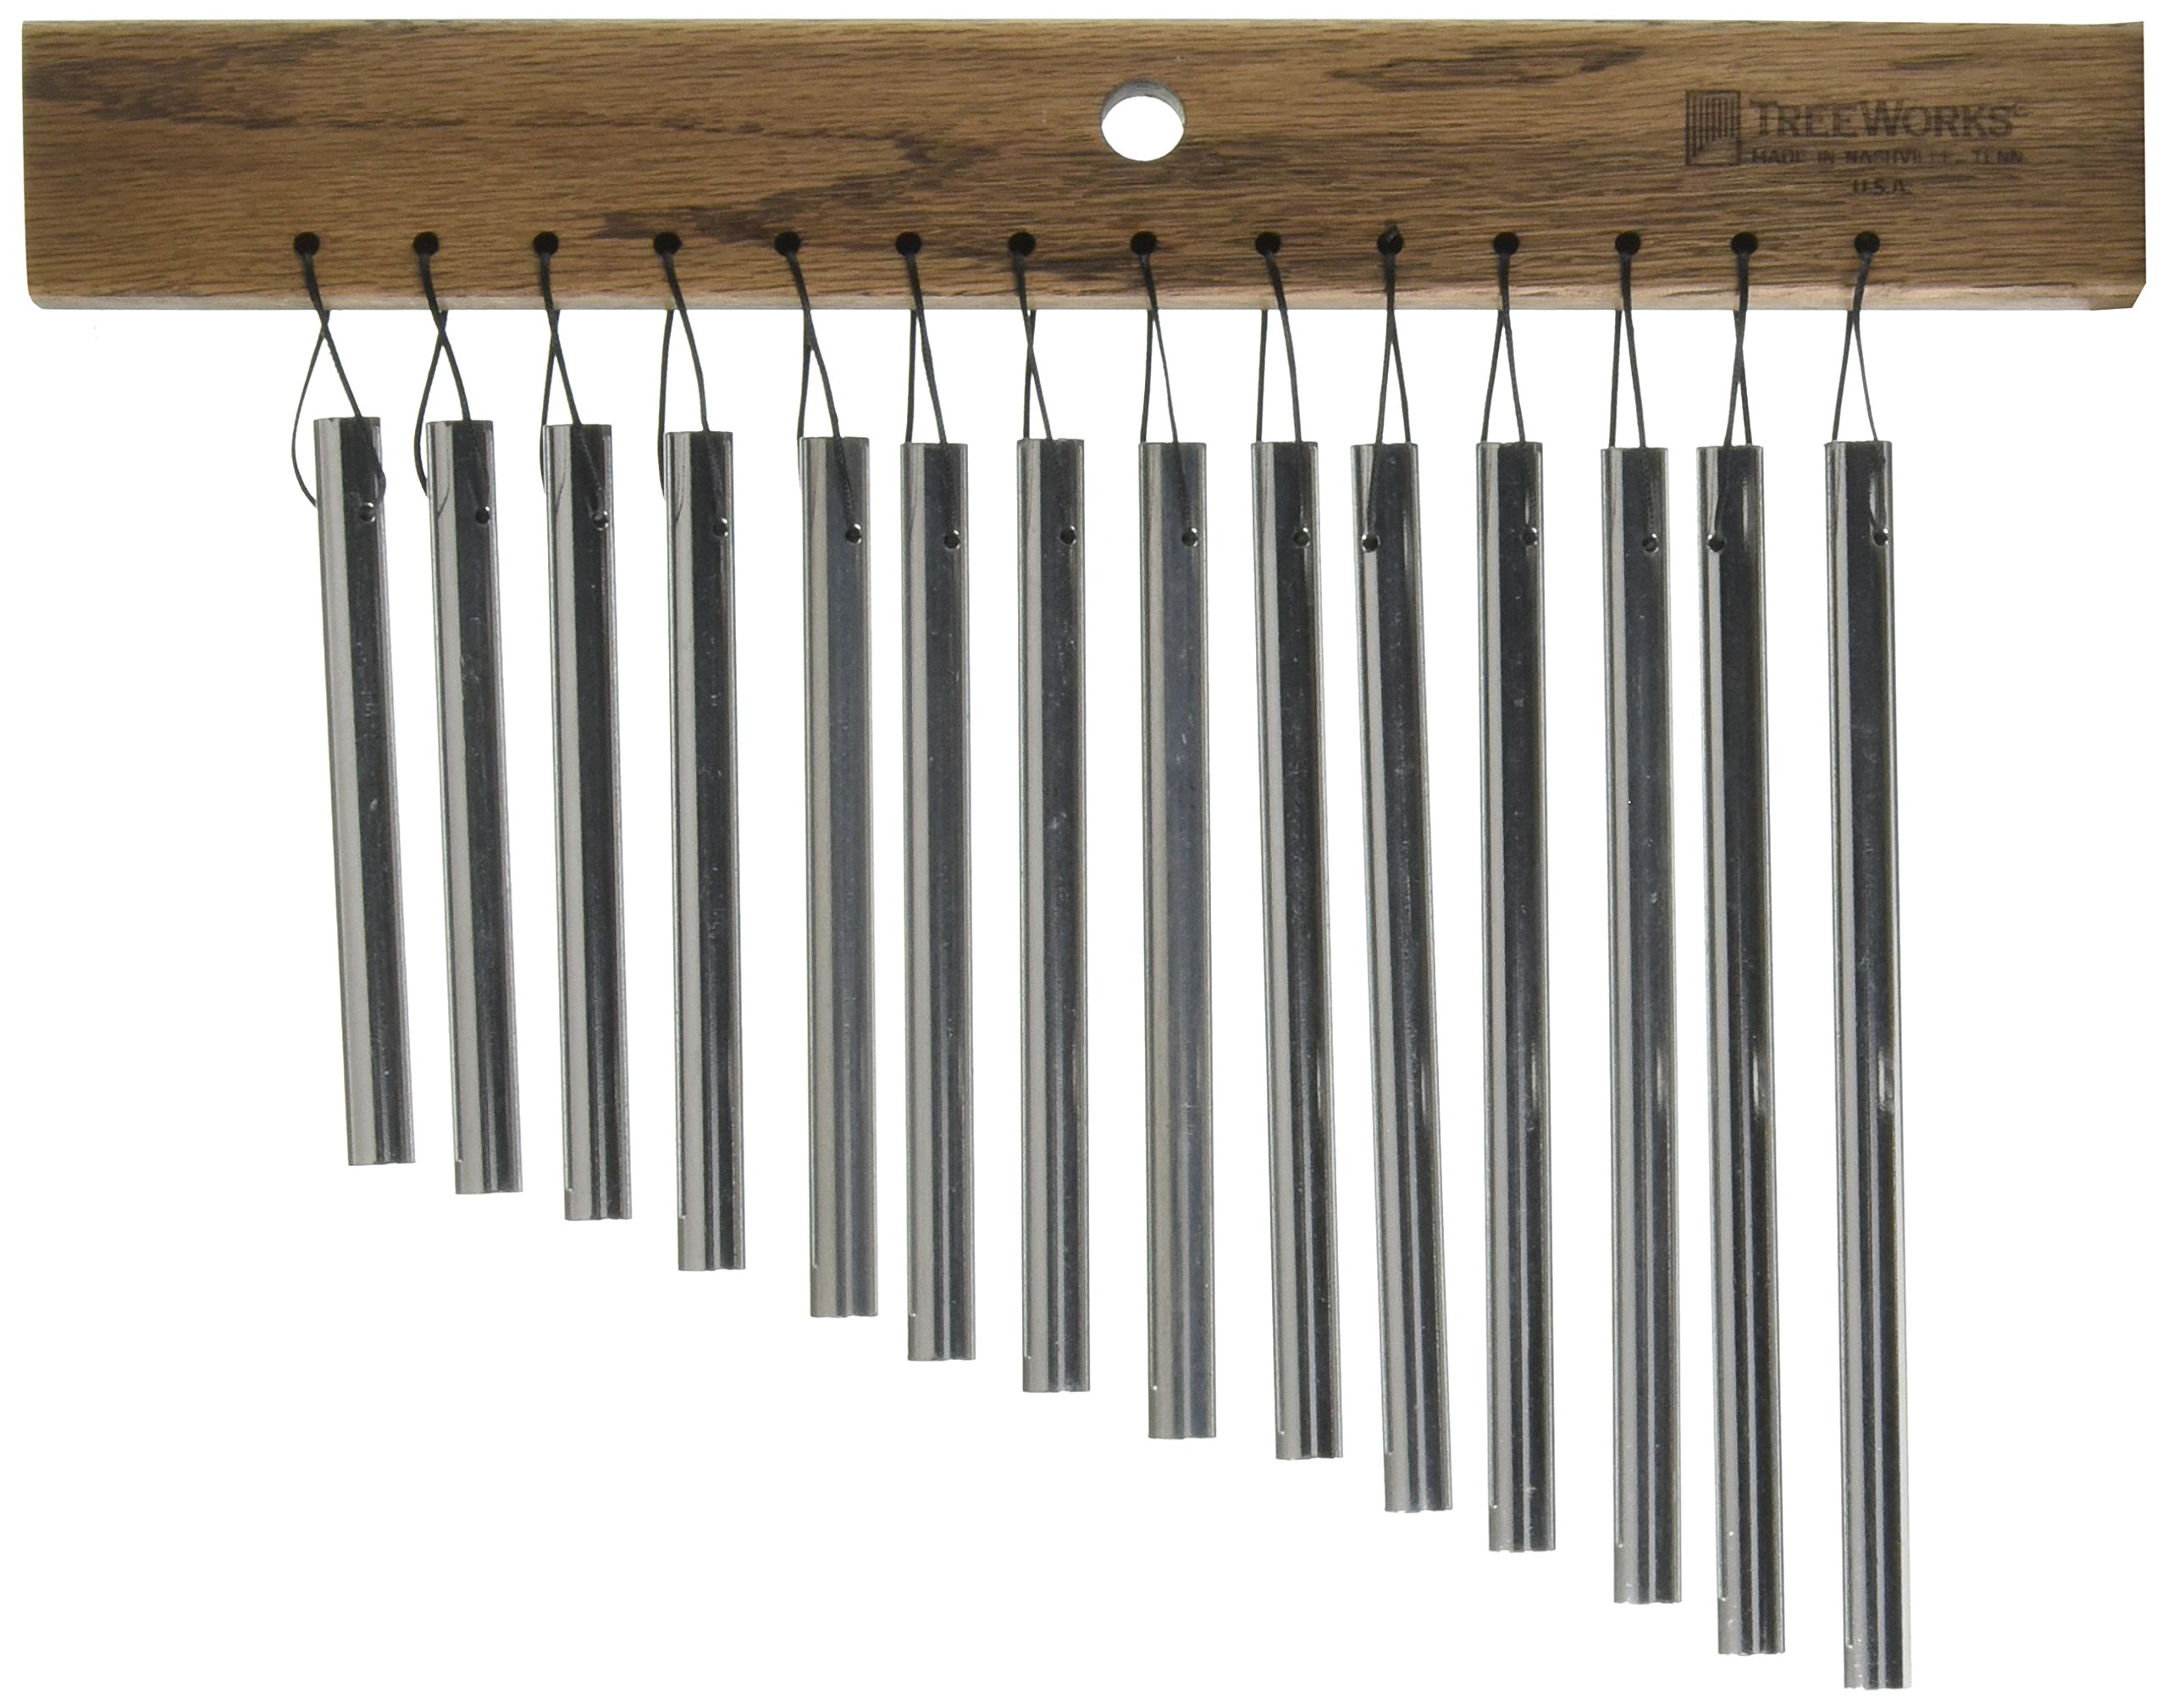 TreeWorks Chimes TRE12 Small Single Row Chime with 12 bars by TreeWorks Chimes